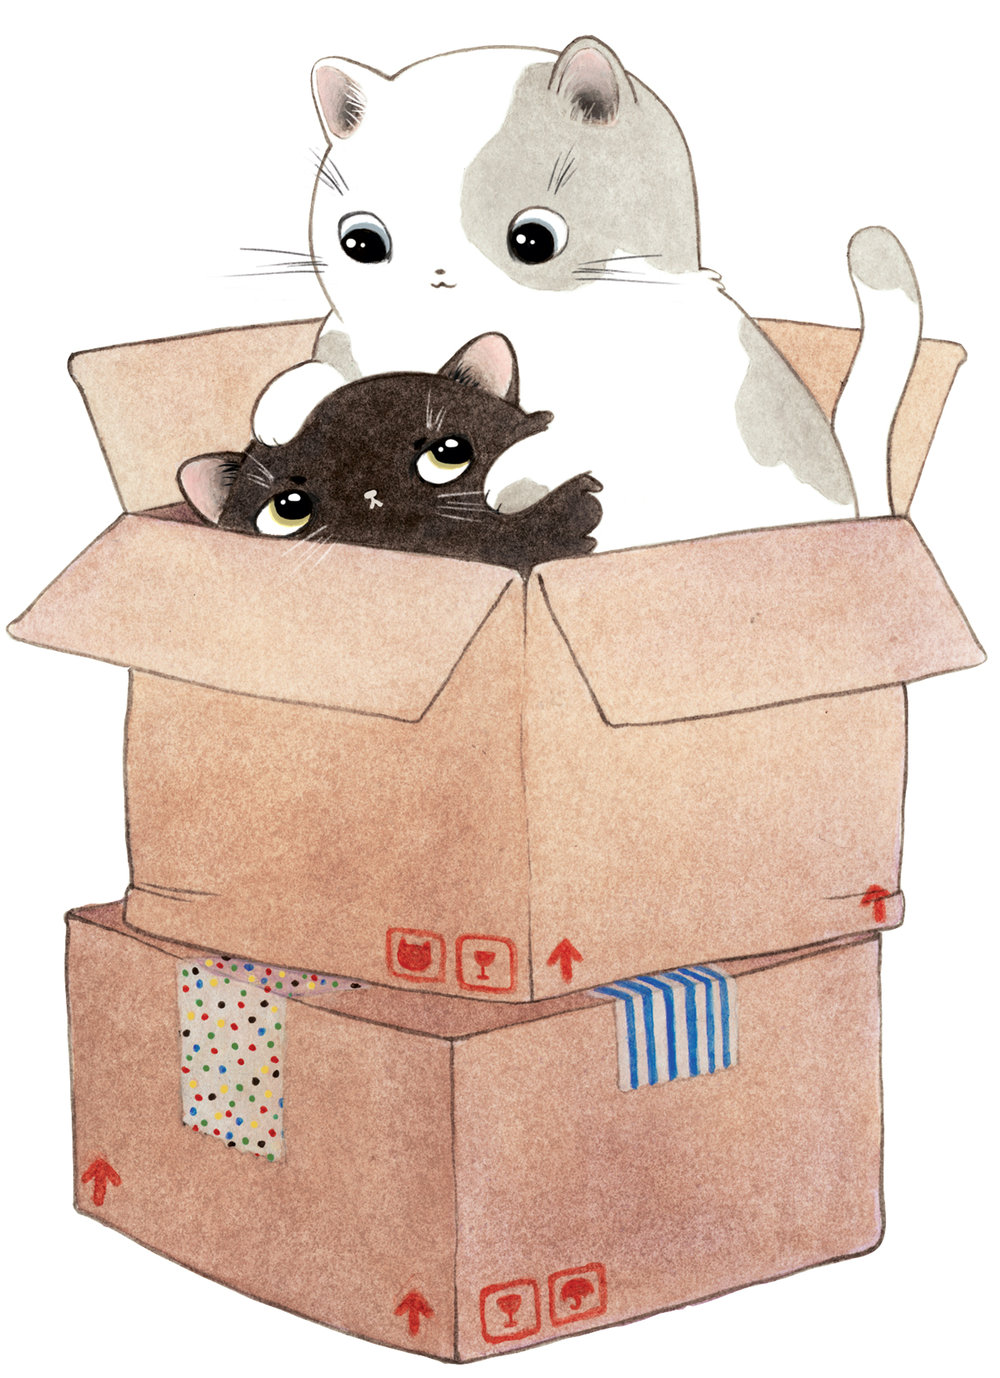 cats-in-box.jpg